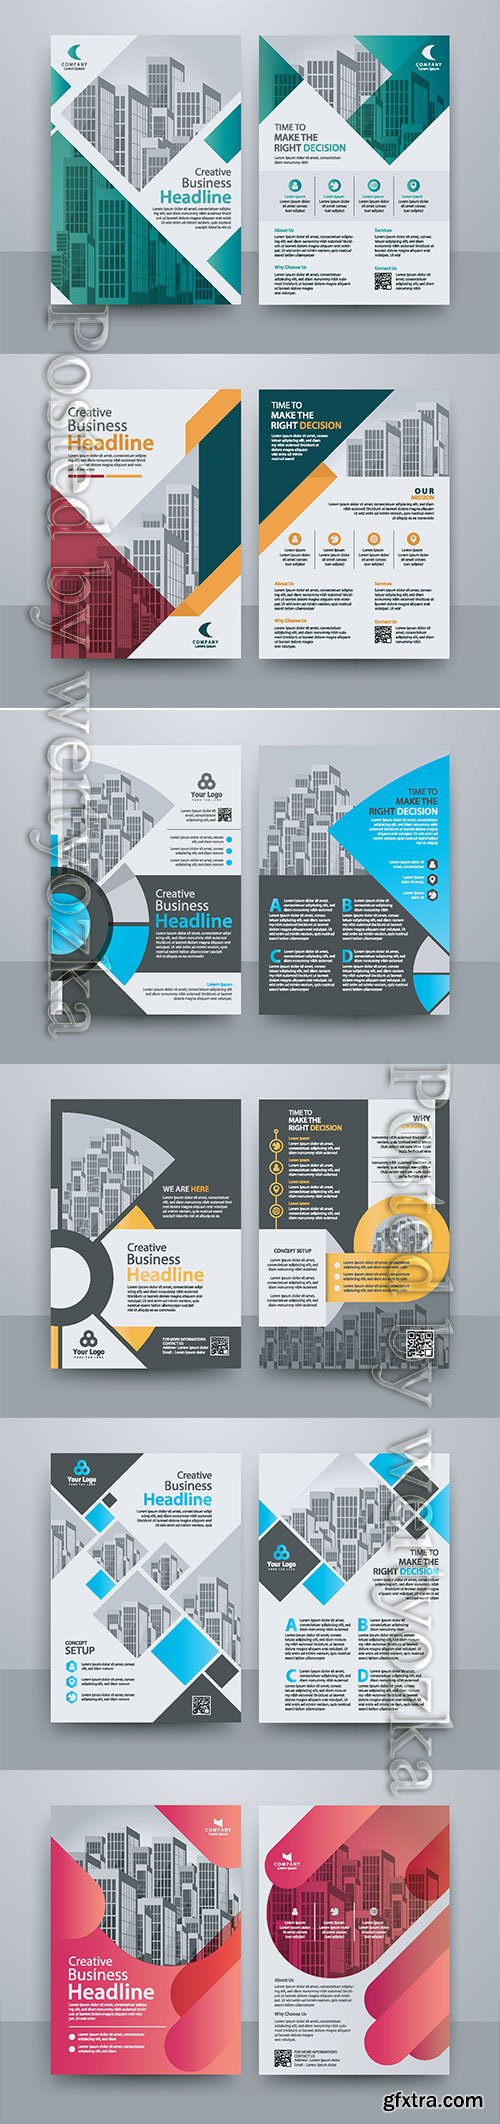 Business vector template for brochure, annual report, magazine # 10